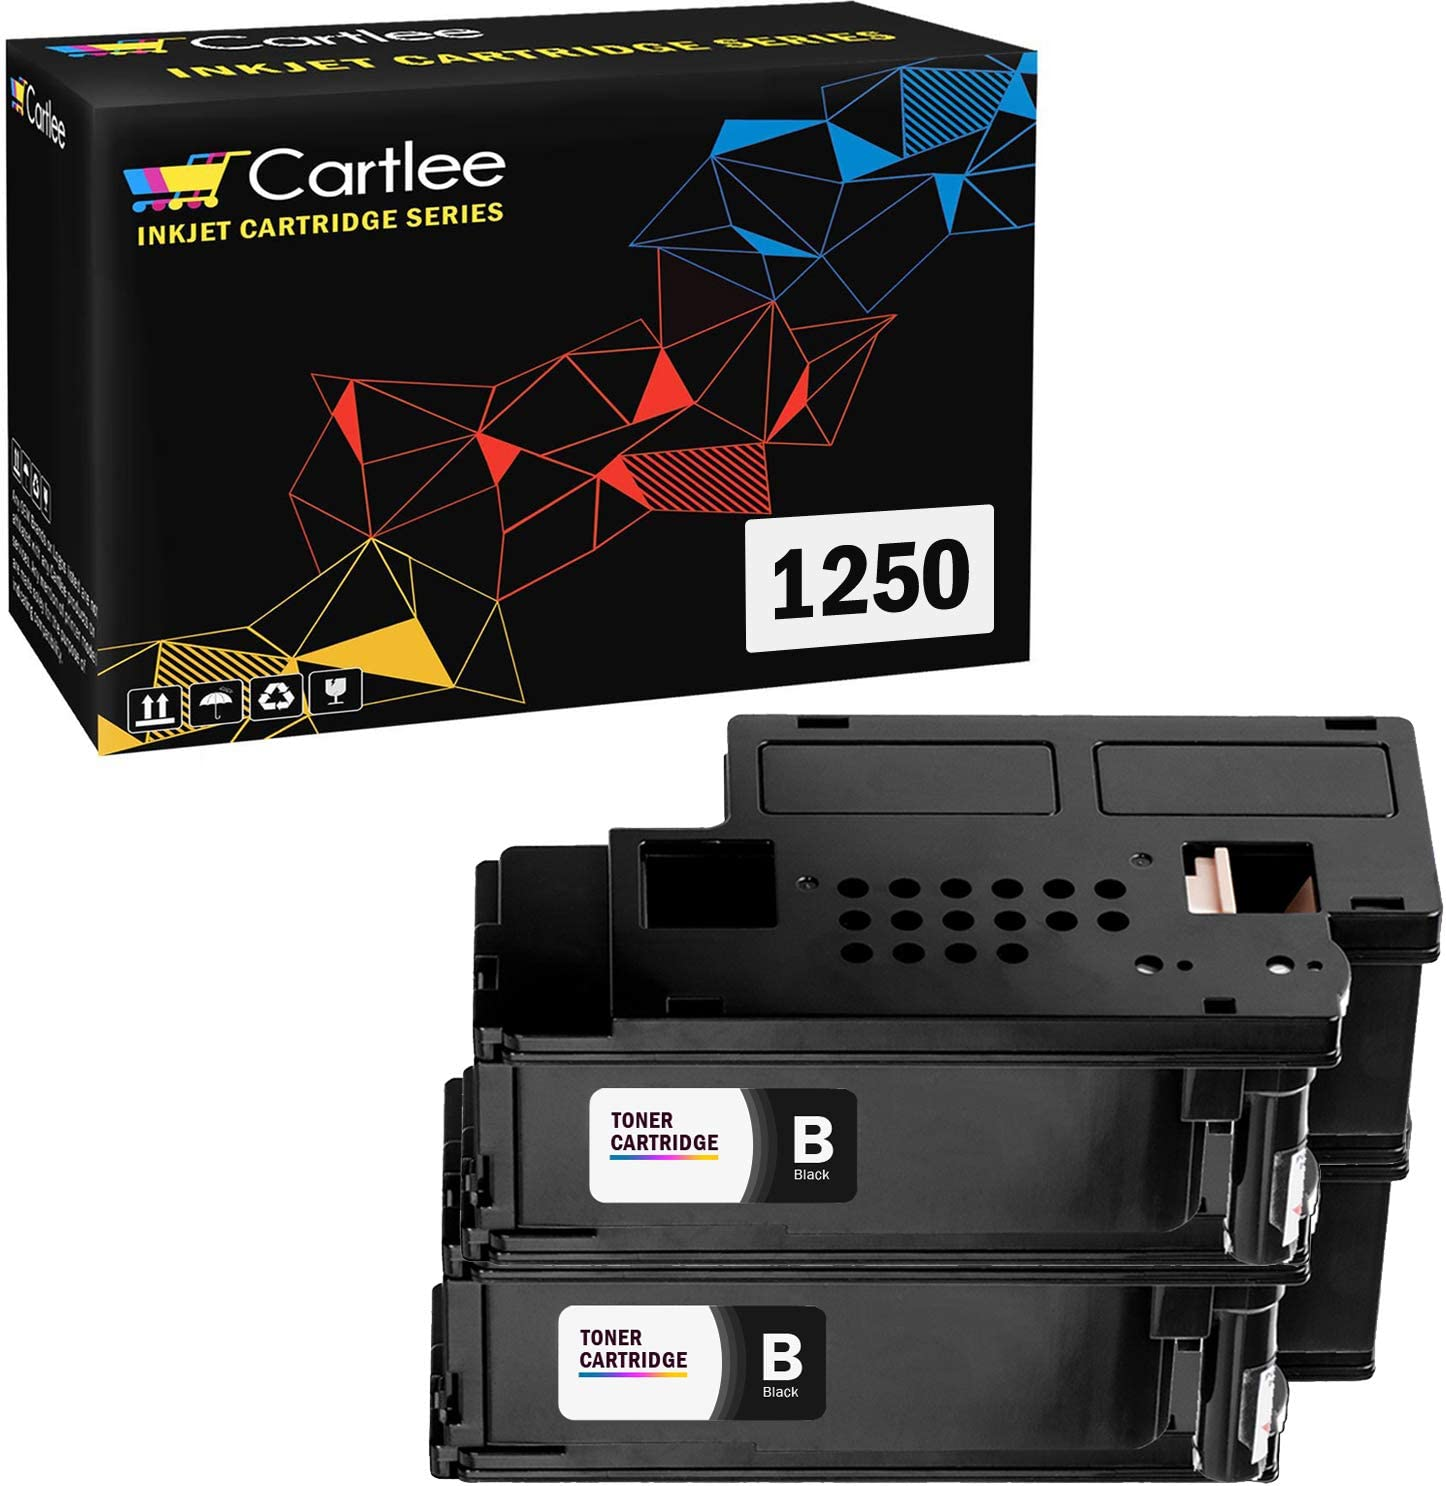 Cartlee Set of 2 Black Compatible High Yield Laser Toner Cartridges Replacement Ink for Dell 1250c 1250 1350cnw 1355cn 1355w 1355cnw C1760nw C1765nf C1765nfw C1760 Printers